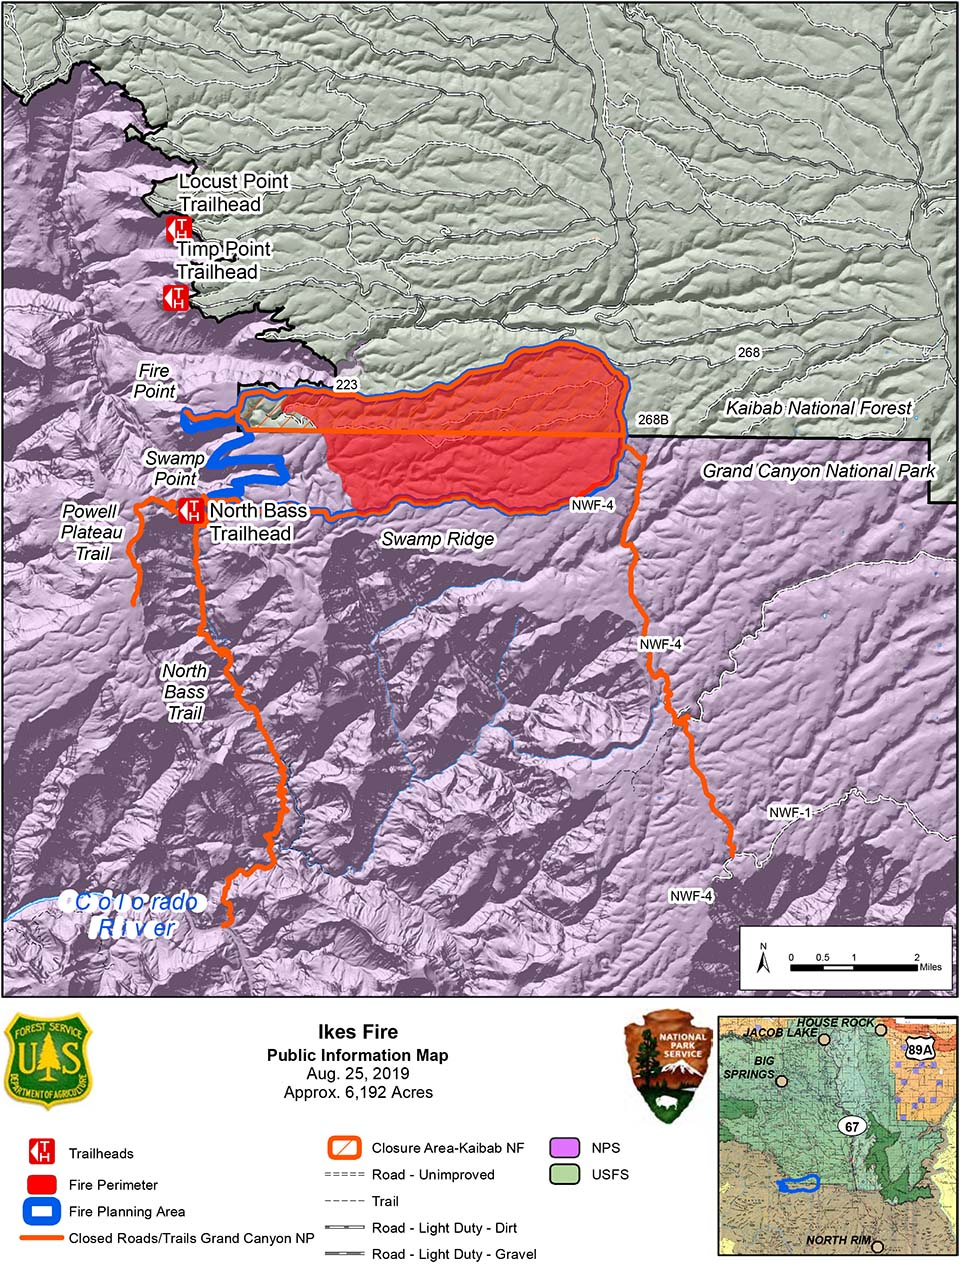 map showing the Ikes Fire containment area in relation to the north side of Grand Canyon National Park in its boundary with Kaibab Nat. Forest 08-25-2019